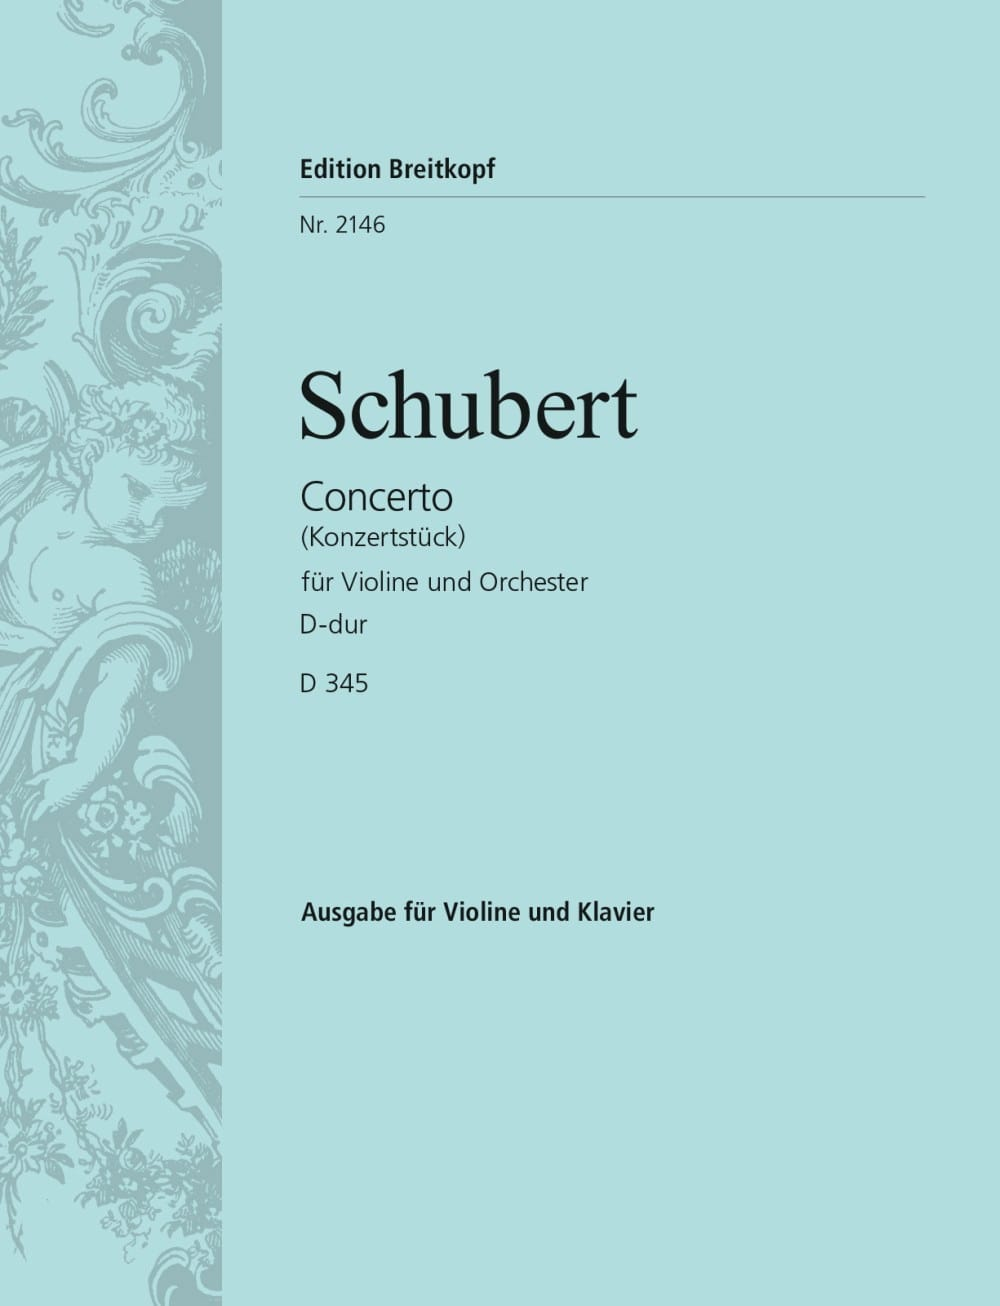 SCHUBERT - Concerto Konzertstück in D major - D 345 - Partition - di-arezzo.com